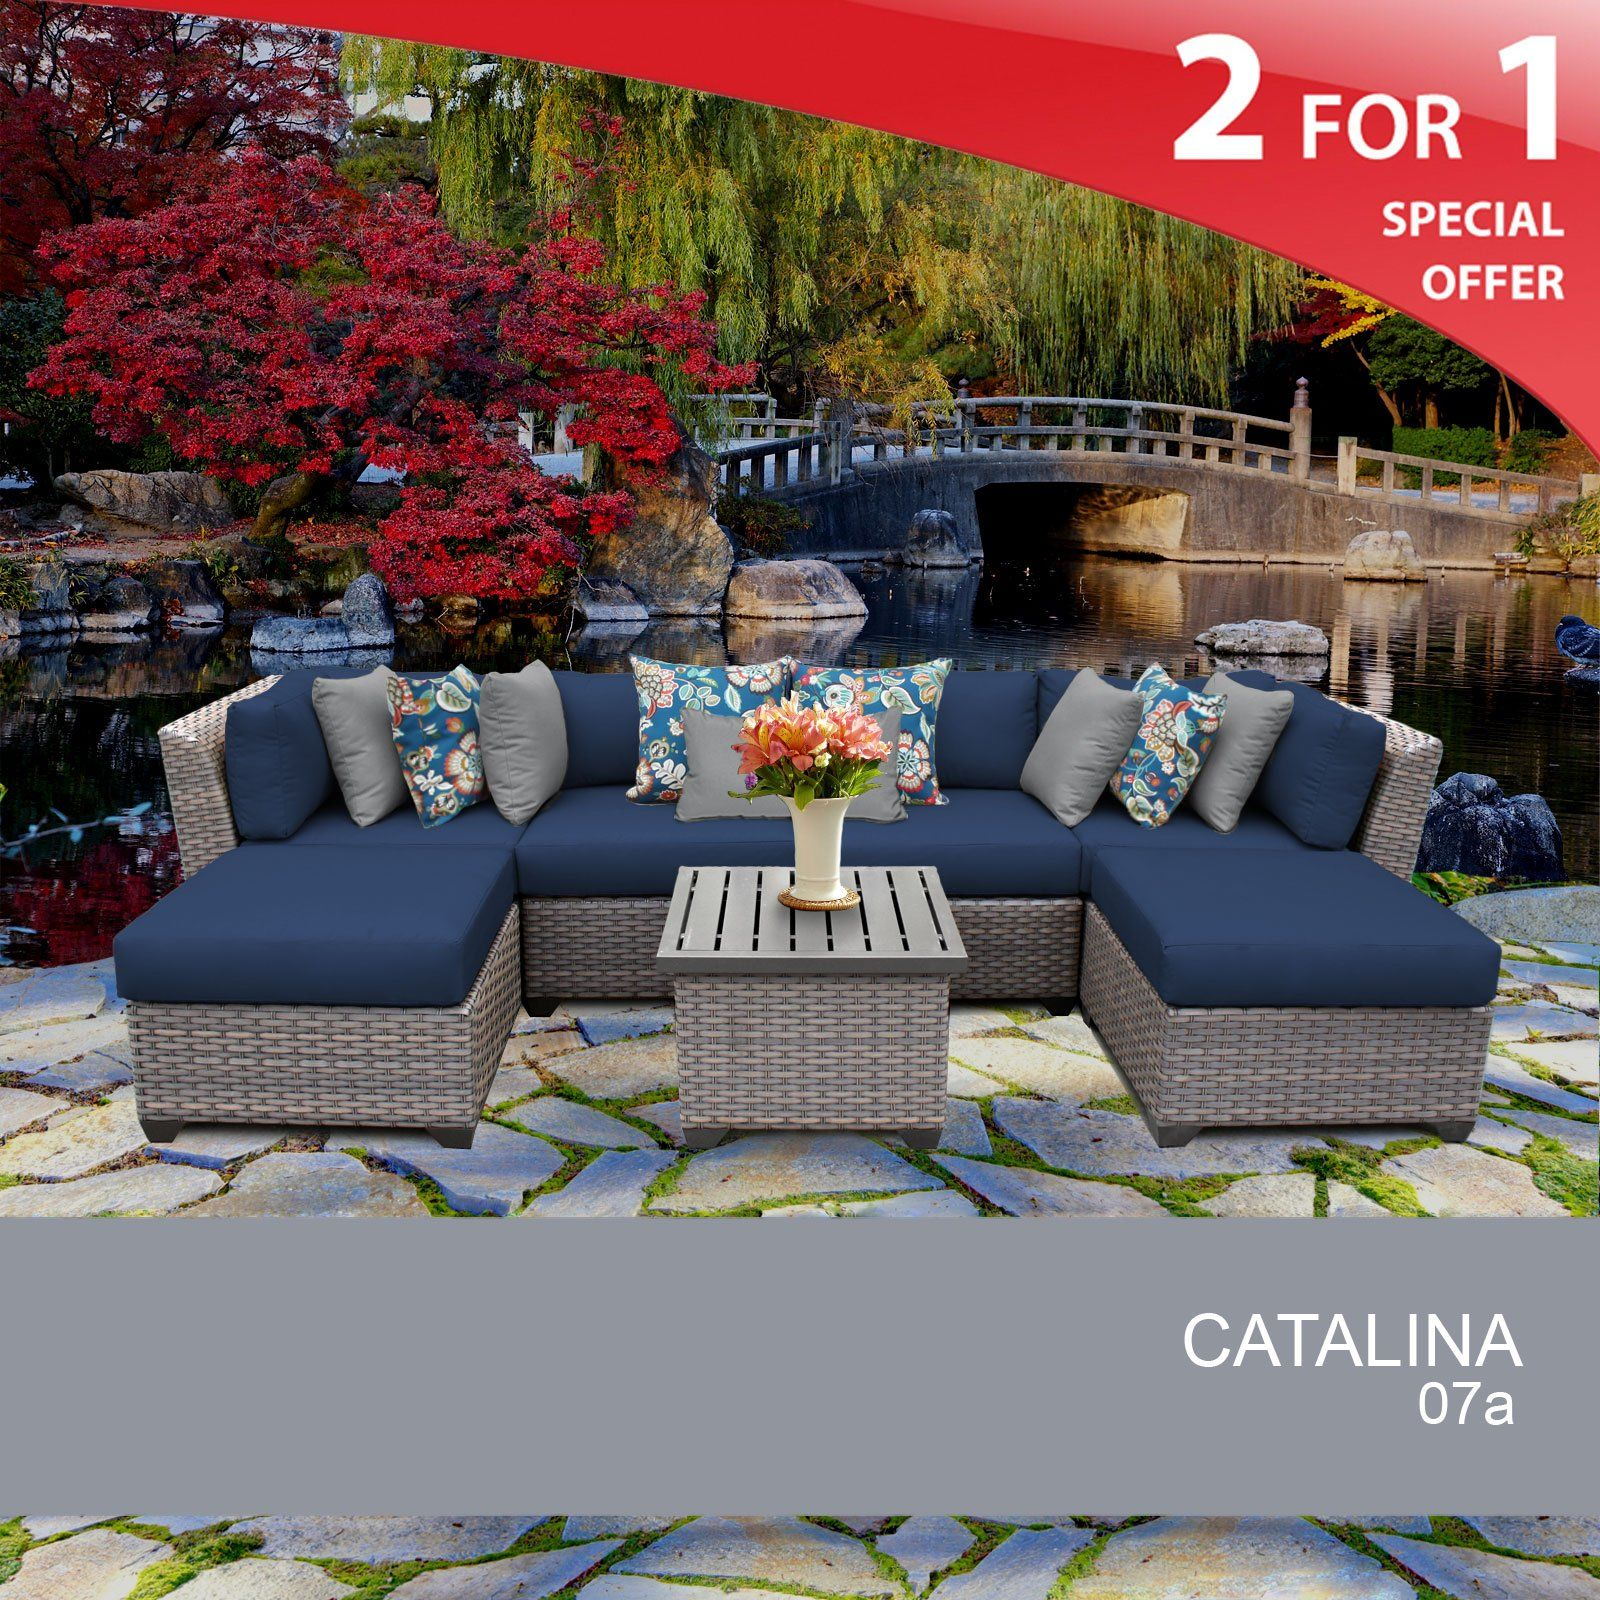 Catalina 45 Piece Outdoor Wicker Patio Furniture Set 045a. FULLY ...